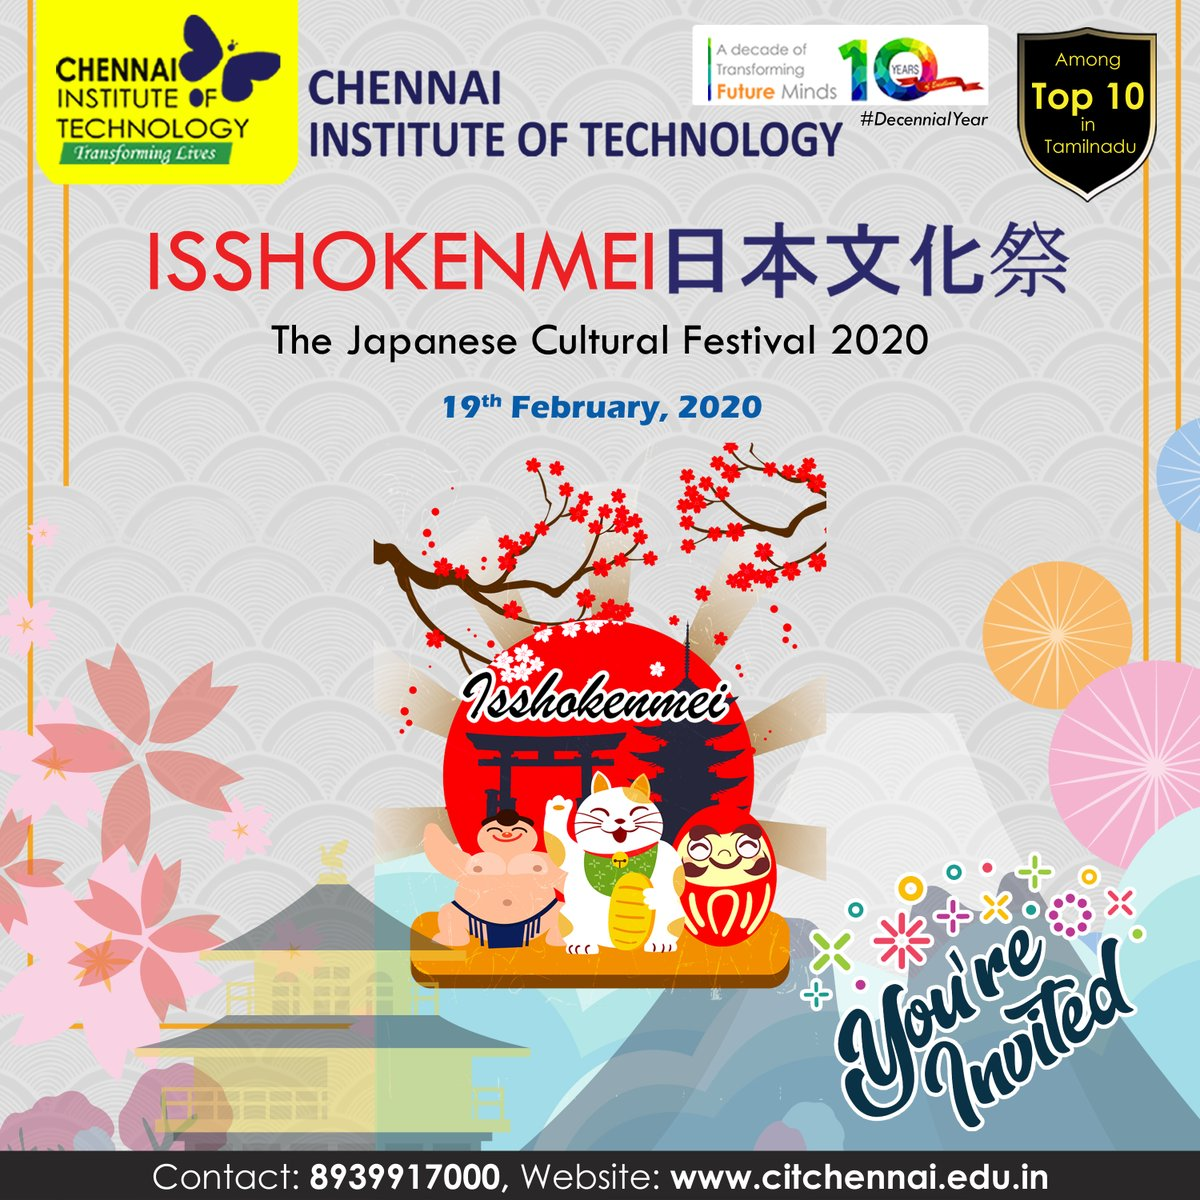 """Asian Laguage Club of #ChennaiInstituteofTechnology organises """"ISSHOKENMEI"""" - The Japanese Cultural Festival 2020 on 19th February, 2020 at Kaveri Auditorium, CIT Campus. Mr.Takesaburo Arai, Indo Japan Business Consultant has kindly consented to be the Chief Guest for the Fest. pic.twitter.com/5W15bu3ArT"""